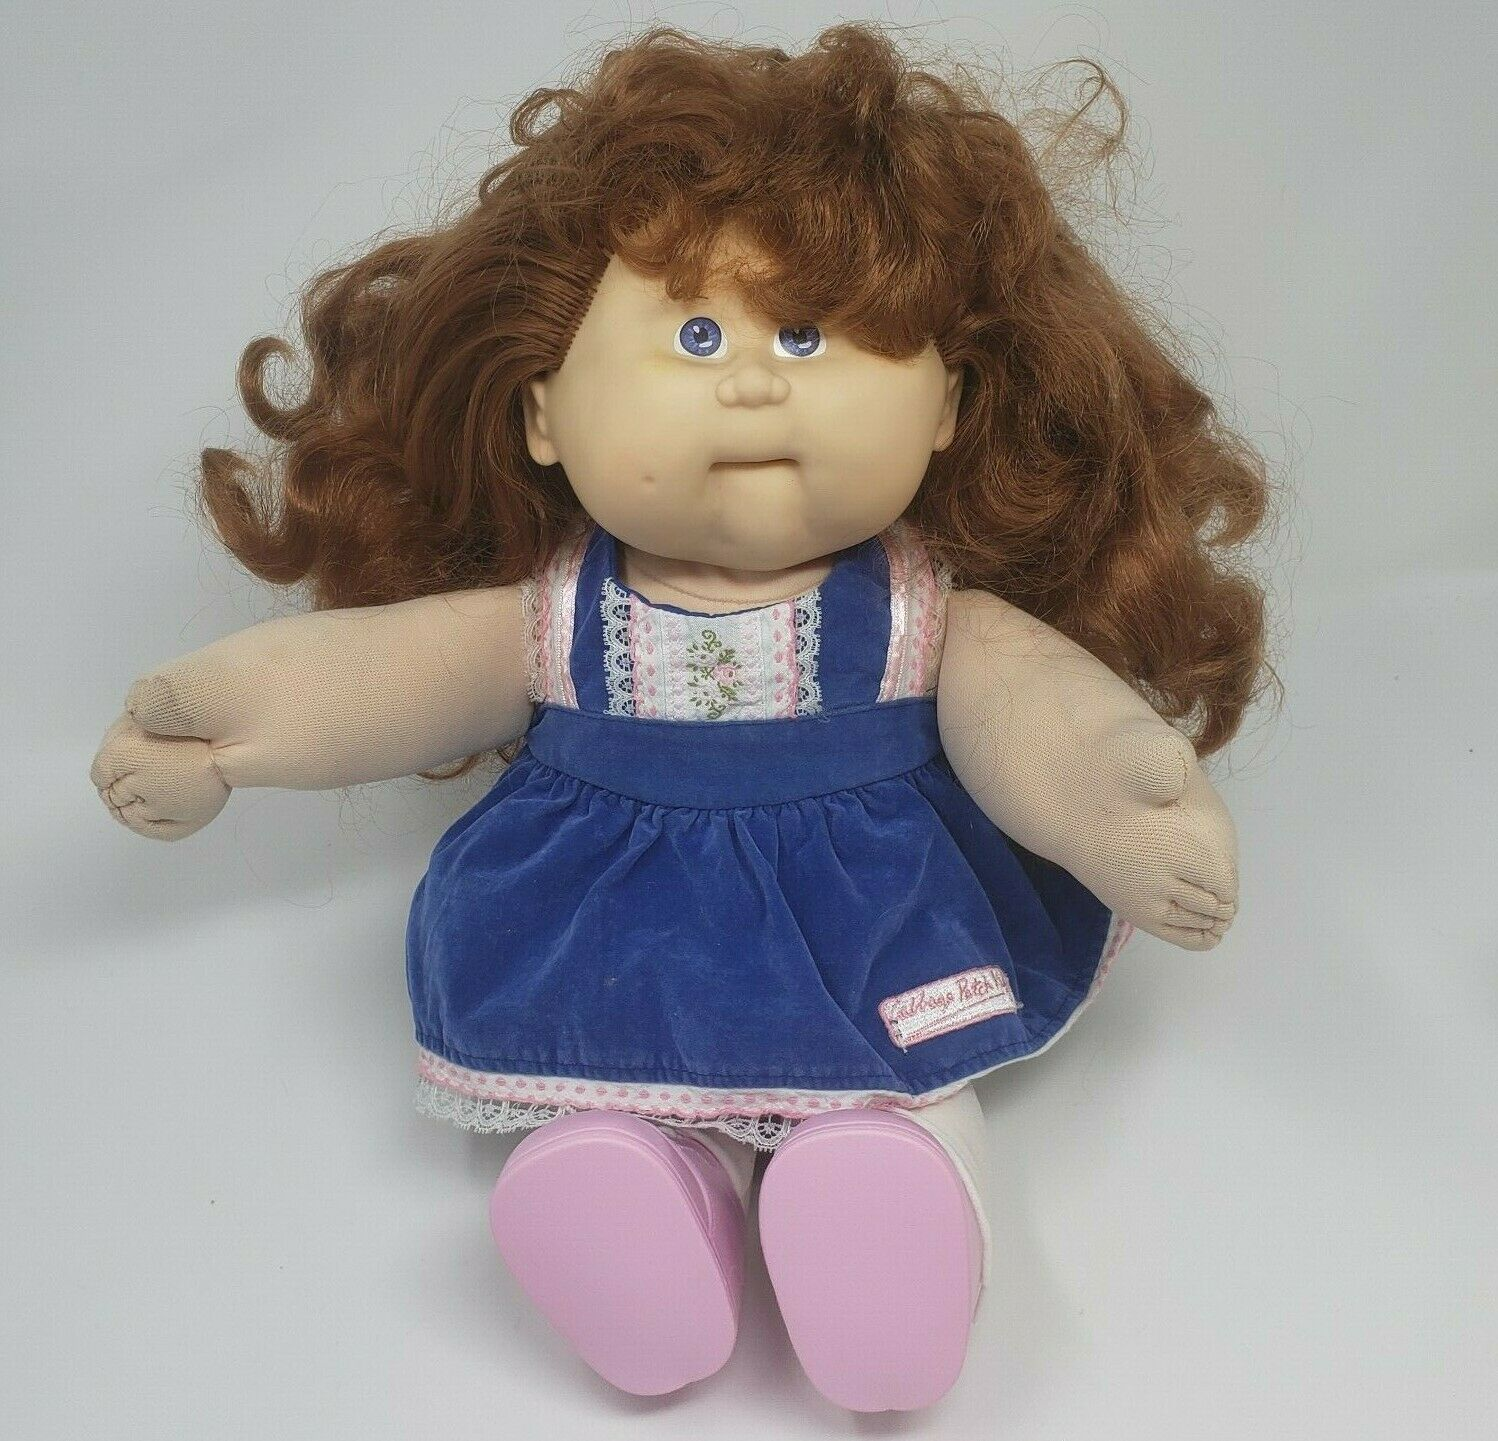 Primary image for VINTAGE 1988 CABBAGE PATCH KIDS CPK GIRL DOLL PLUSH NON TALKING BROKEN REPAIR  B